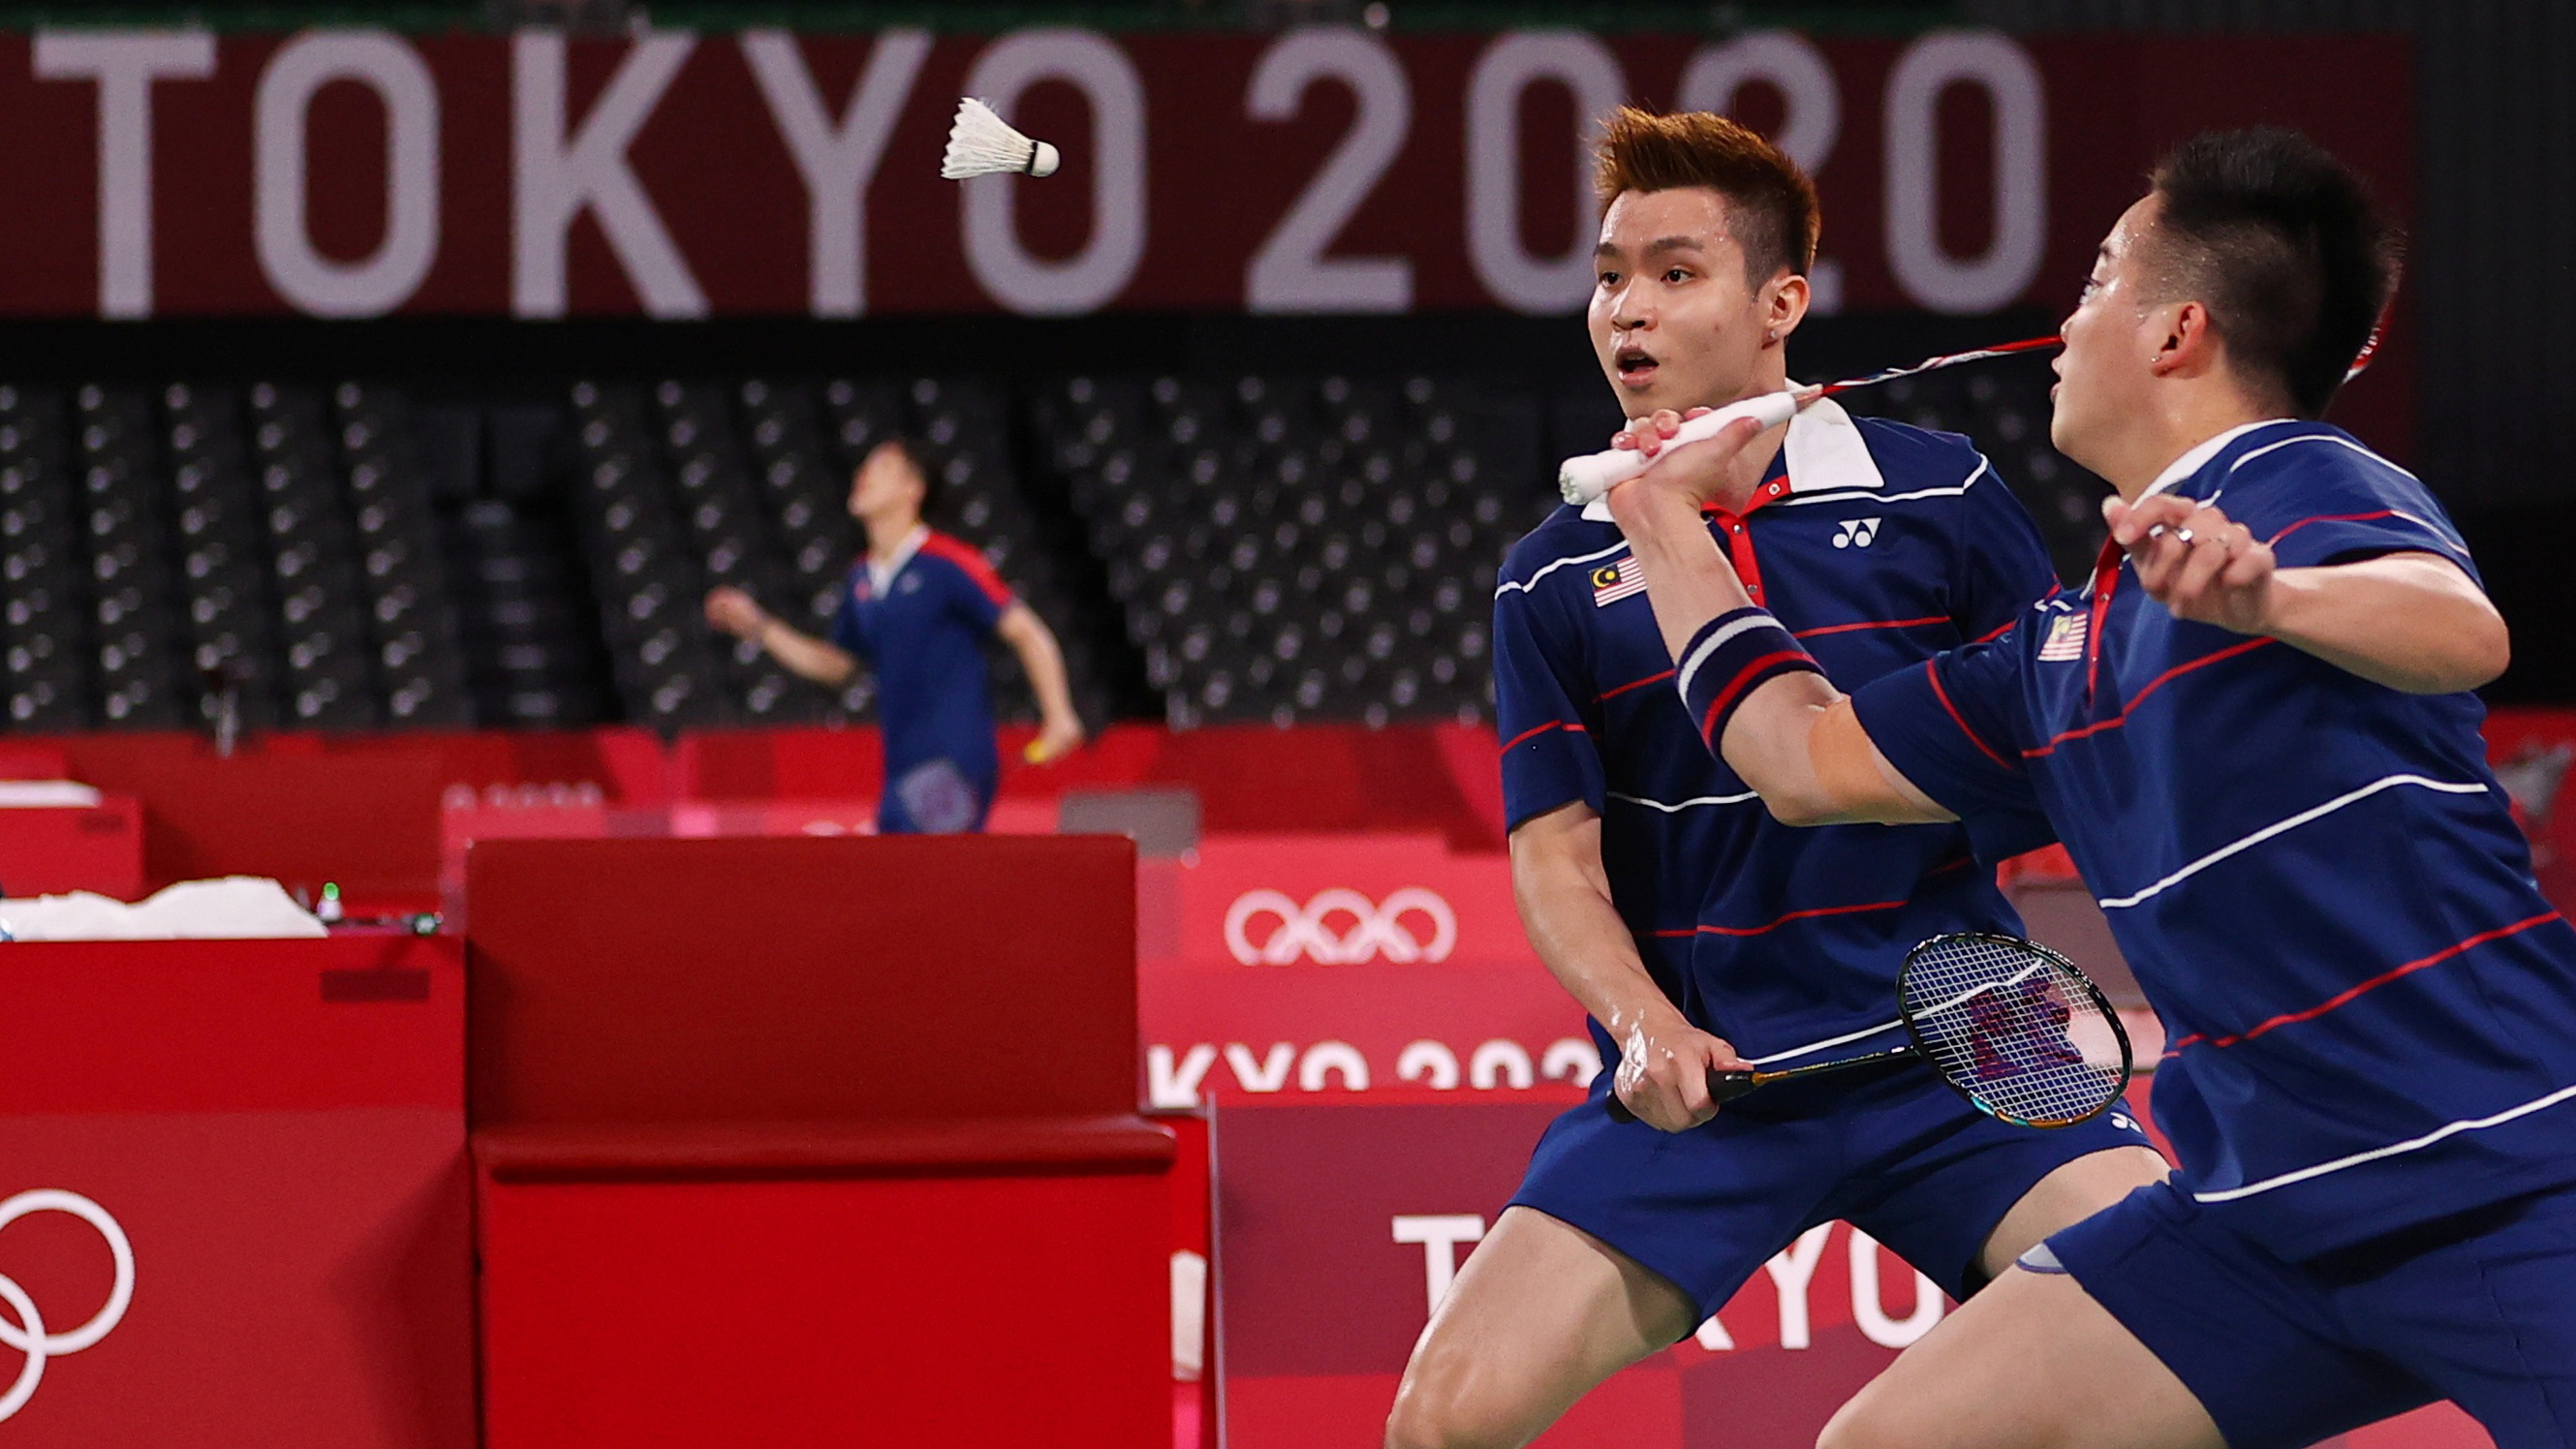 Tokyo 2020 Olympics - Badminton - Men's Doubles - Quarterfinal - MFS - Musashino Forest Sport Plaza, Tokyo, Japan – July 29, 2021. Aaron Chia of Malaysia in action as Soh Wooi Yik of Malaysia looks on during the match against Marcus Fernaldi Gideon of Indonesia and Kevin Sanjaya Sukamuljo of Indonesia. REUTERS/Hamad I Mohammed